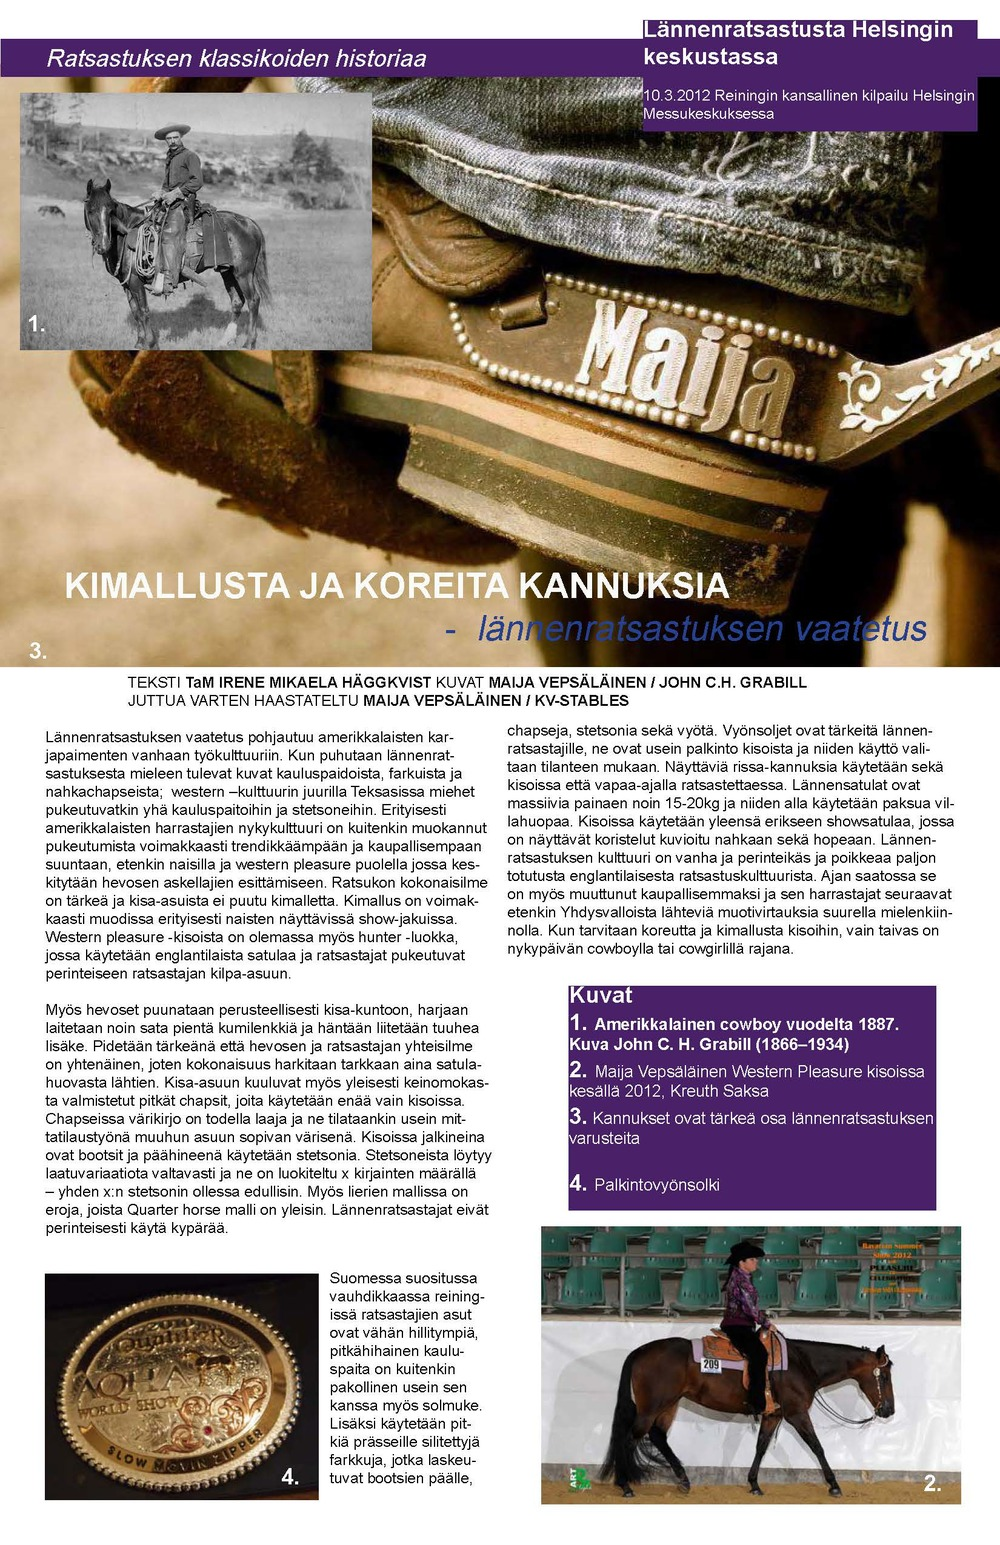 Irene Mikaela Häggkvist as a columnist for the Hippos magazine (The Equestrian Federation of Finland) about the history of riding apparel. History of western clothing, January 2013.